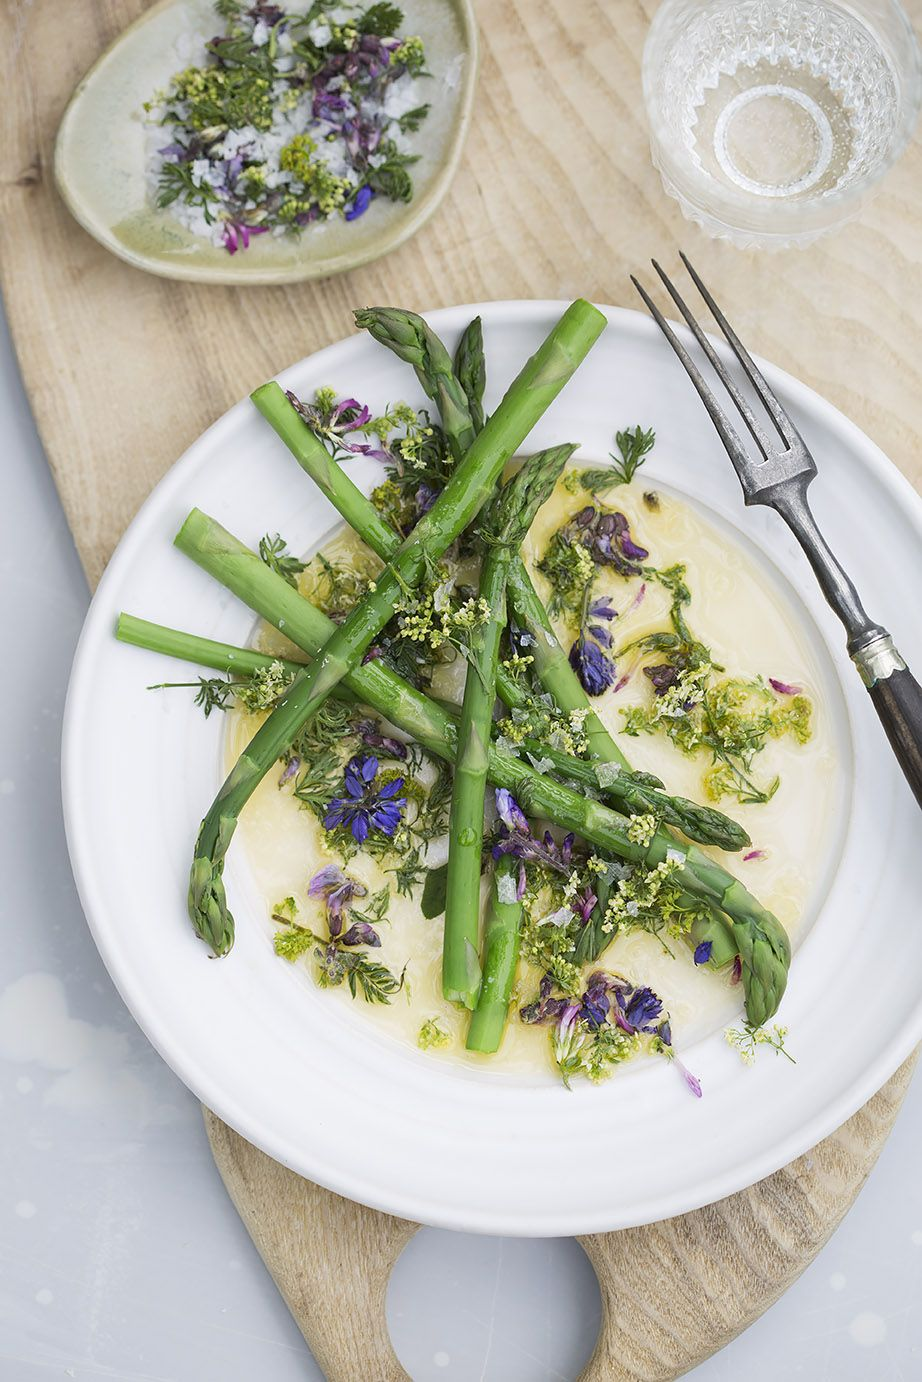 Follow me shooting wild food created by lisen sundgren herbalist follow me shooting wild food created by lisen sundgren herbalist author food stylist and recipe developer plated on ceramics made by the ceramic artist forumfinder Choice Image